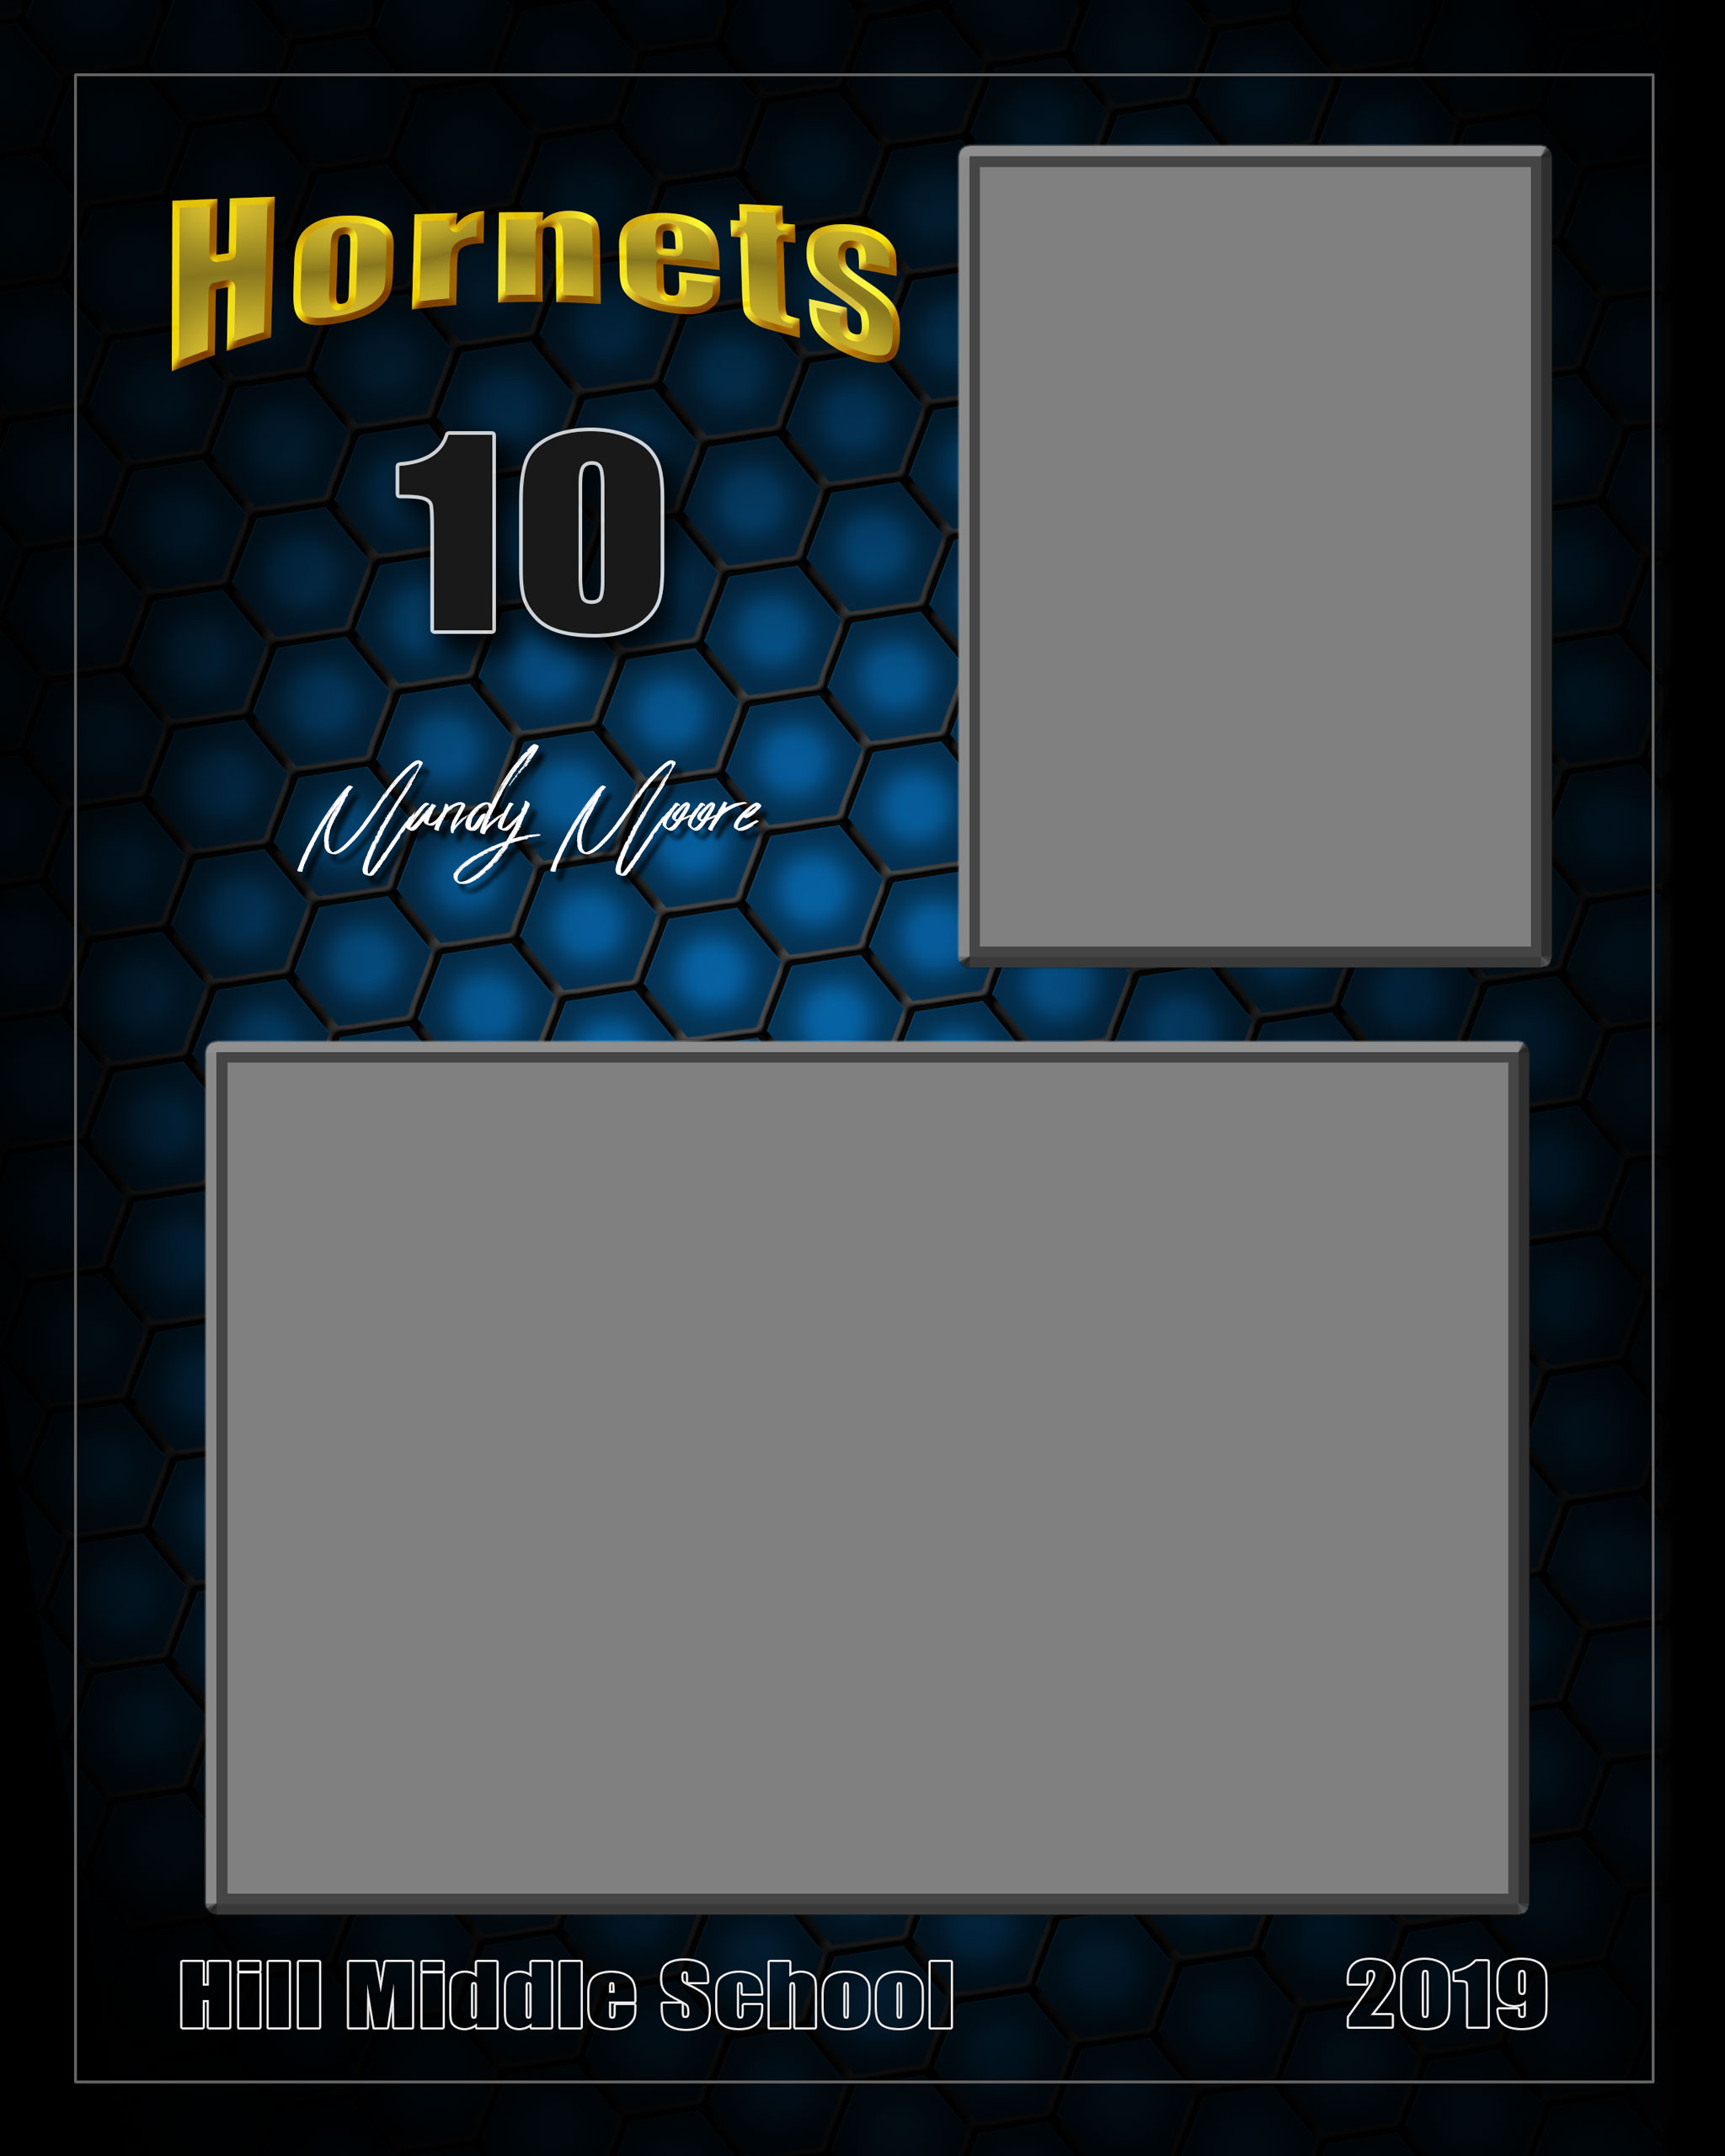 Photoshop templates for sports and portrait photography - honeycomb all sports vertical memory mate